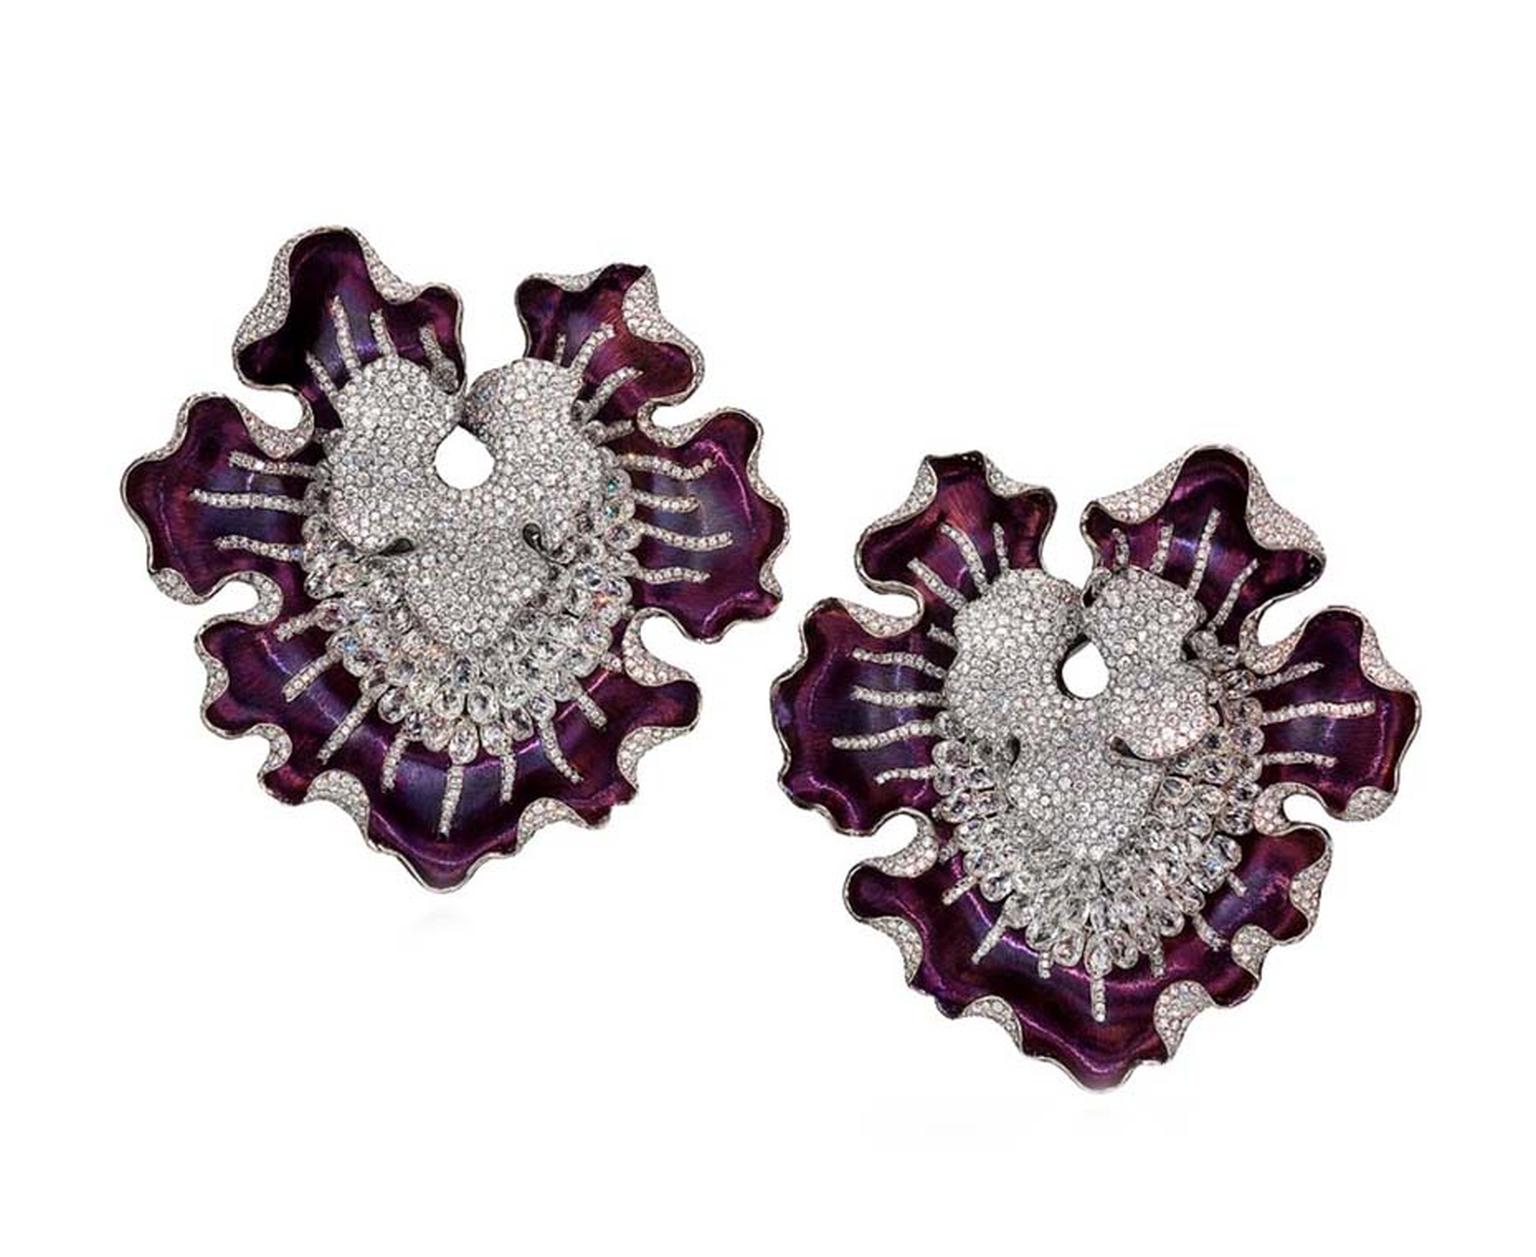 Anna Hu's Magic Orchid high jewellery earrings, worn by Hilary Swank as hair ornaments to the 2011 Oscars, are made of purple titanium metal, set with 2,058 briolette, silver-grey and white diamonds.